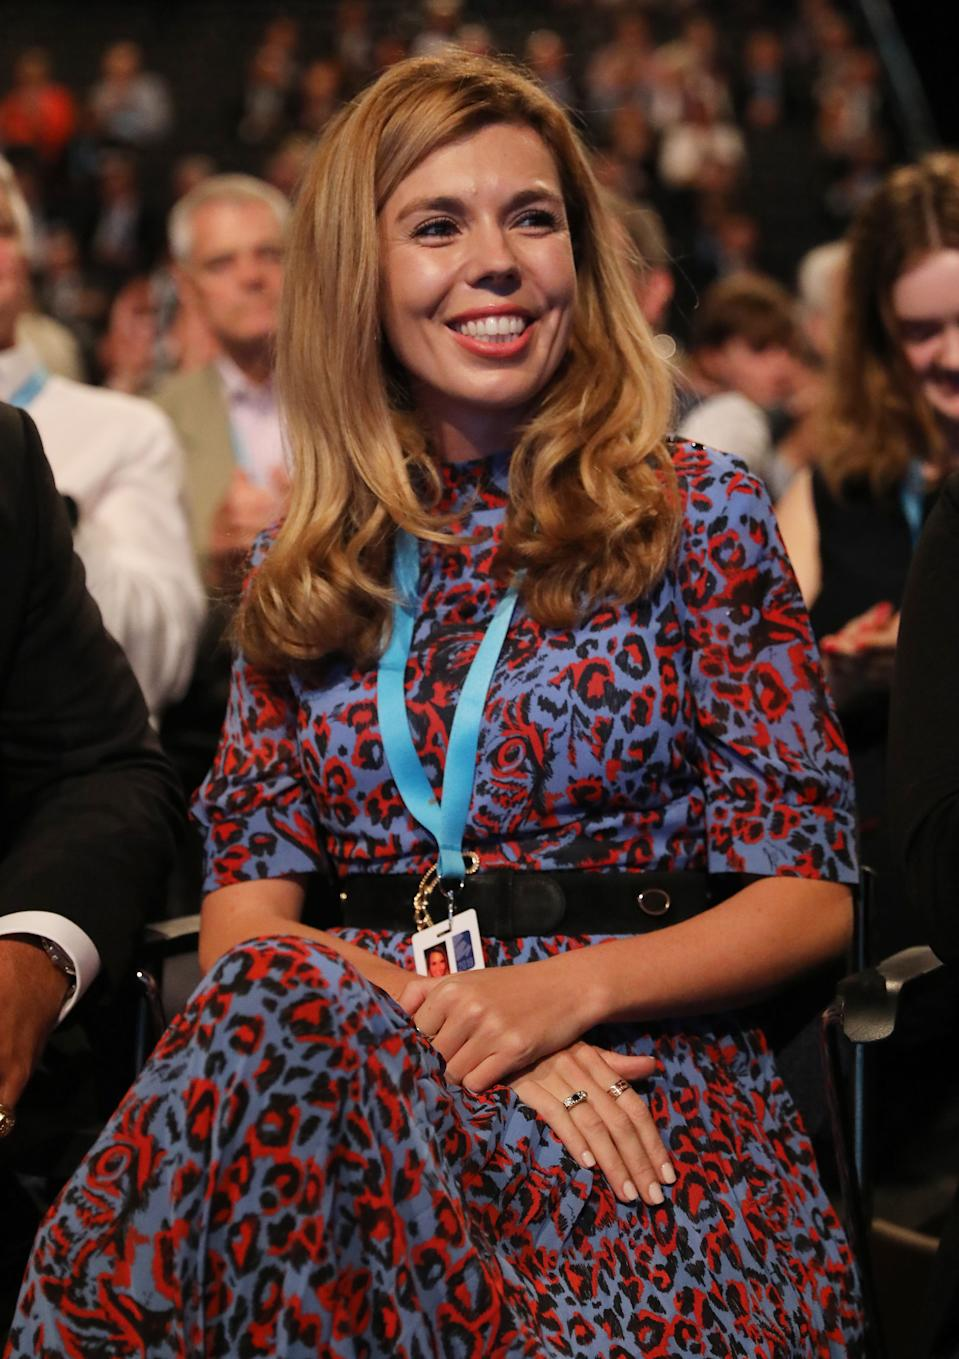 Carrie Symonds opted for a colourful animal print midi dress from Whistles on the second day of the Conservative Party Conference in Manchester [Photo: PA]